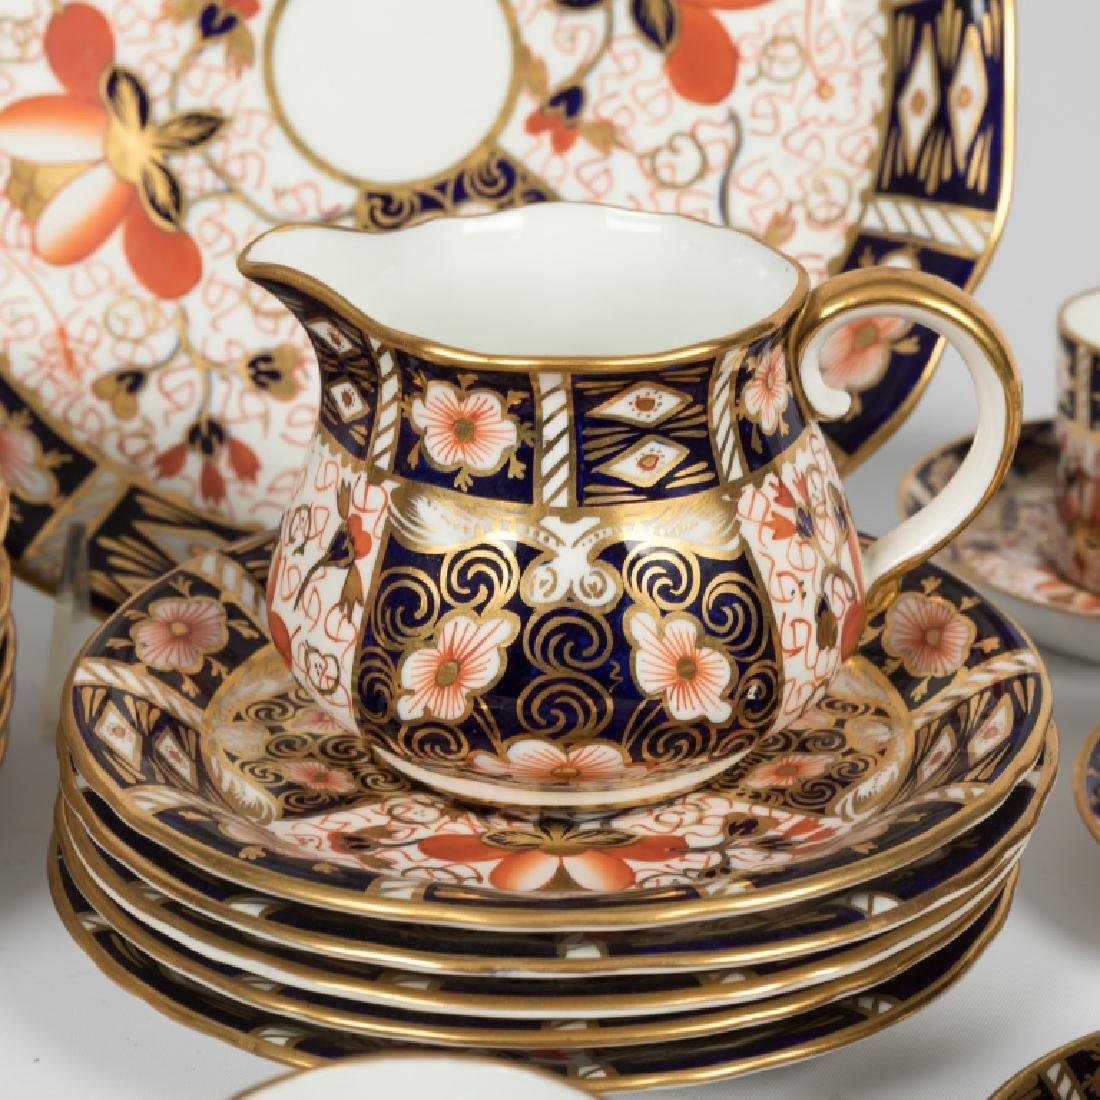 54 Piece Royal Crown Derby Old Imari Luncheon Set - 7